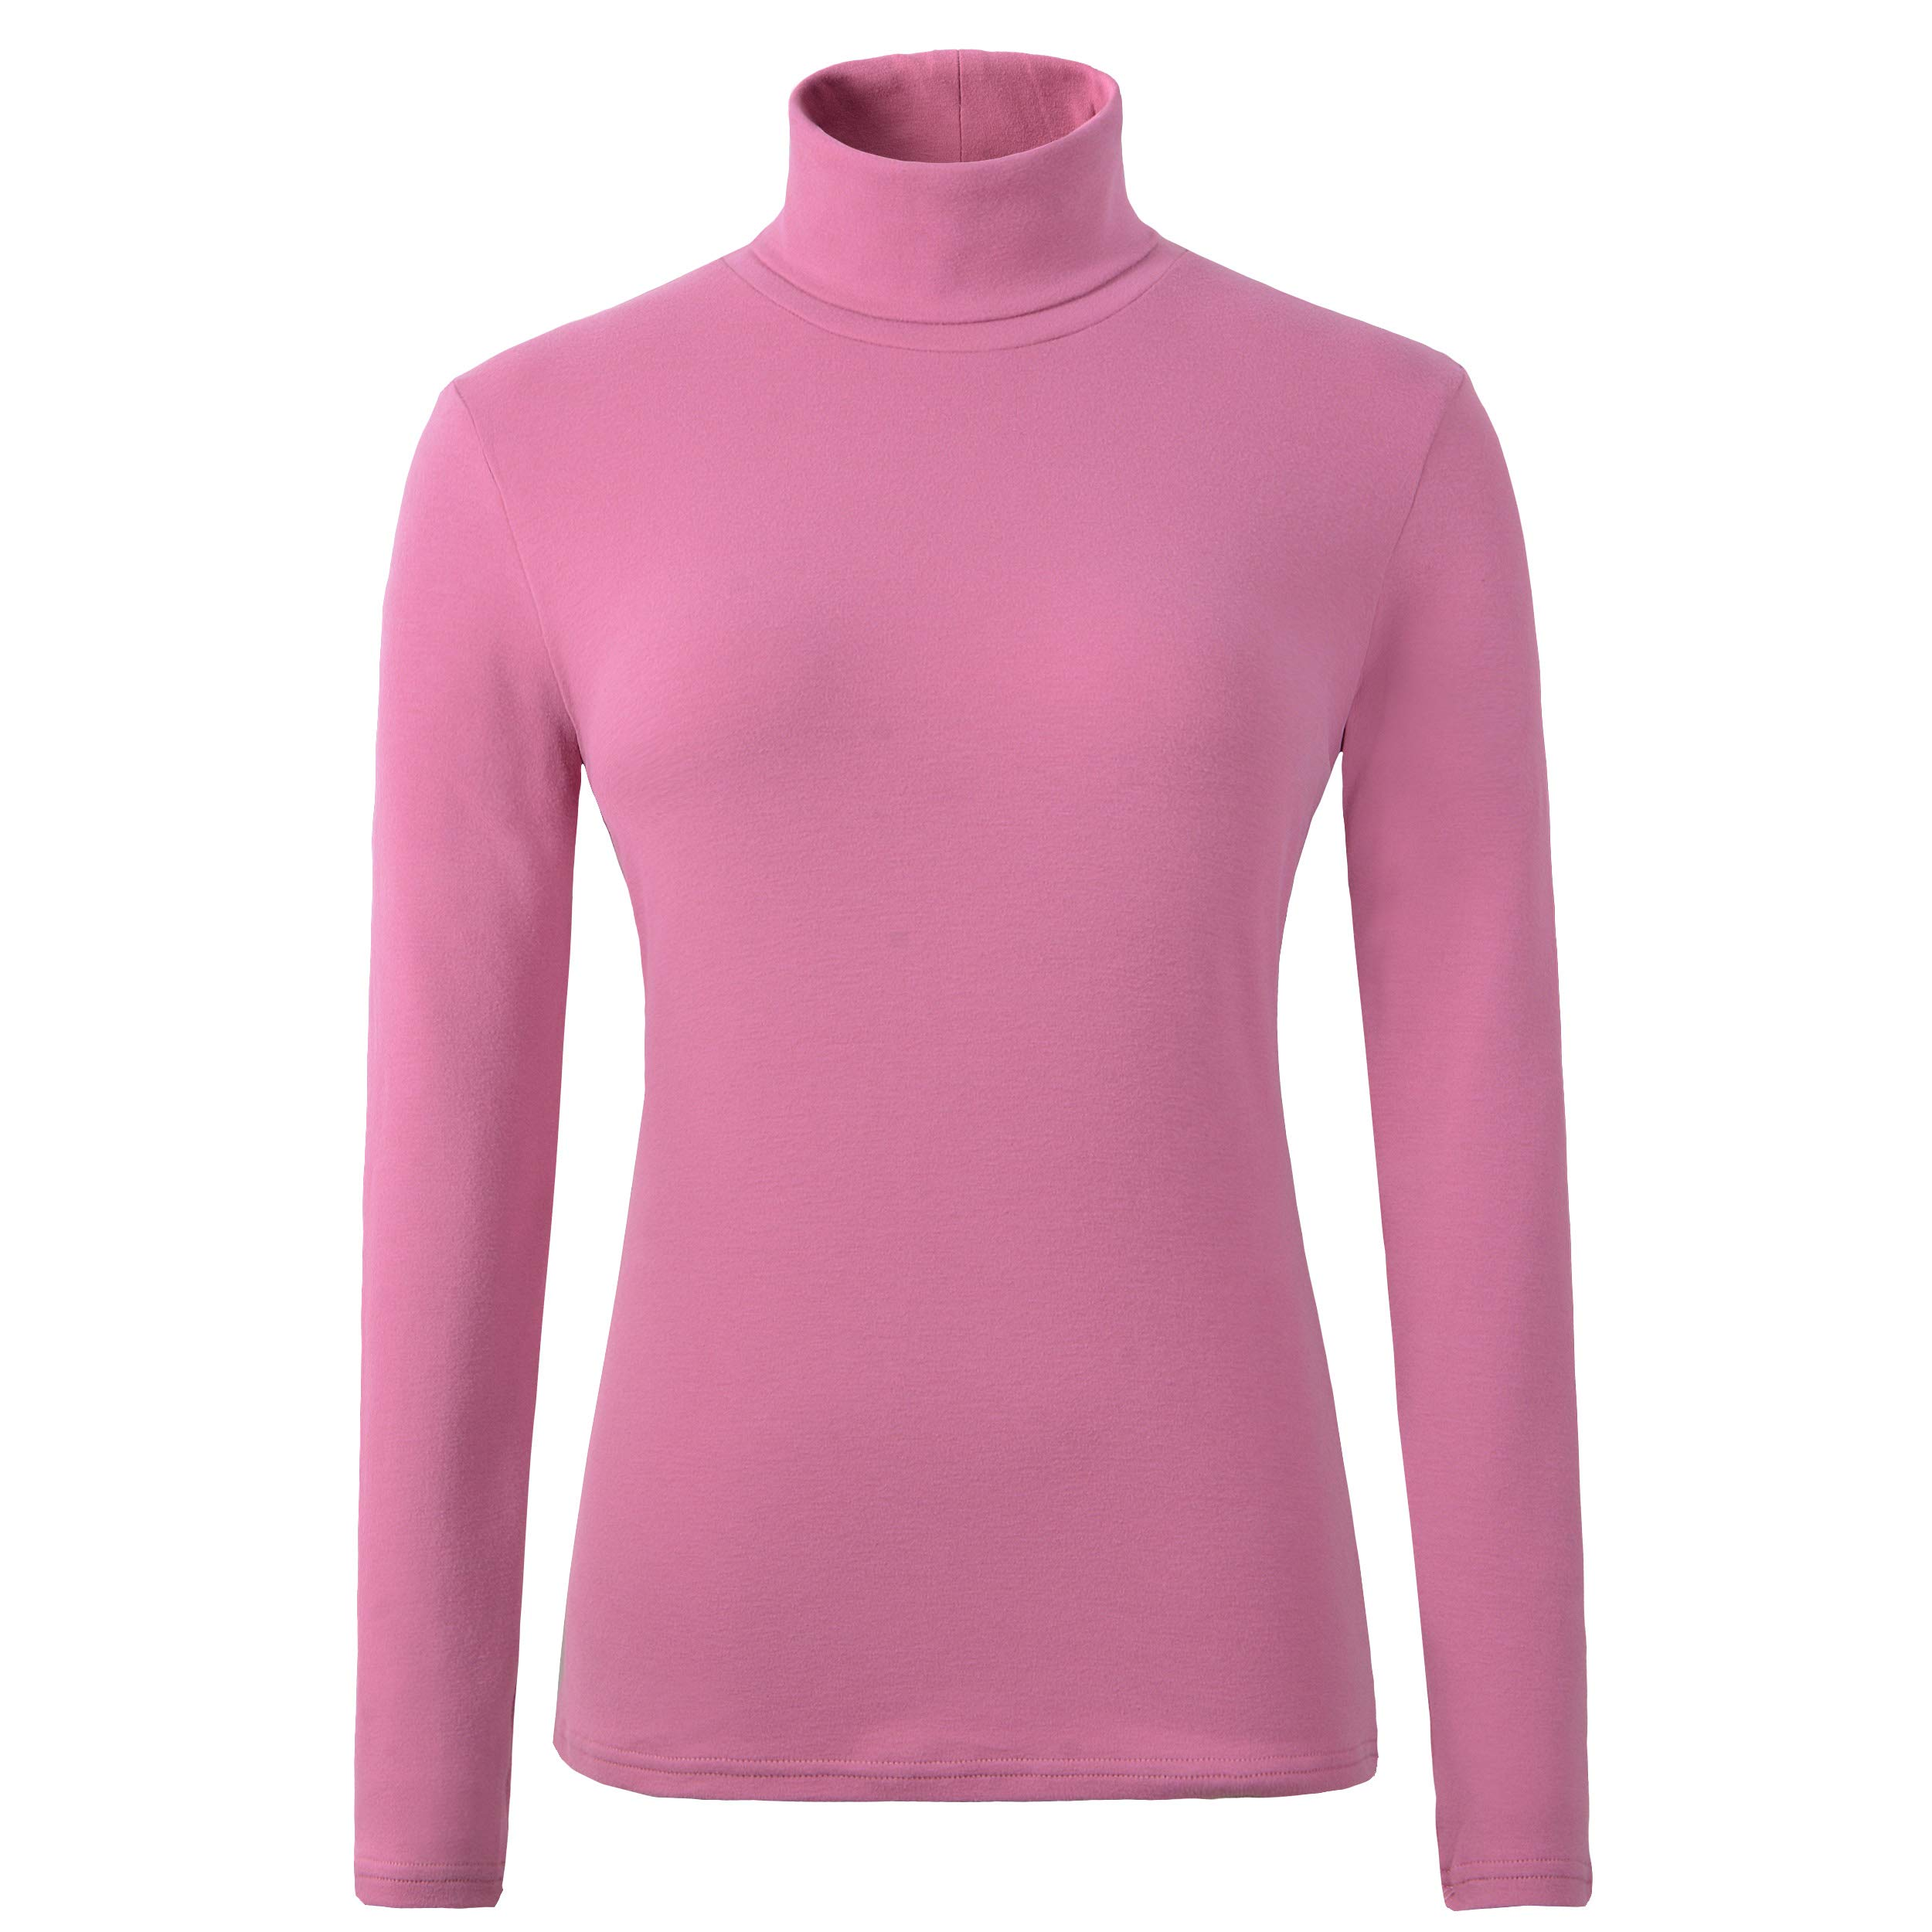 HieasyFit Women s Soft Cotton Turtleneck Top Basic Pullover Sweater product  image 576f541b4